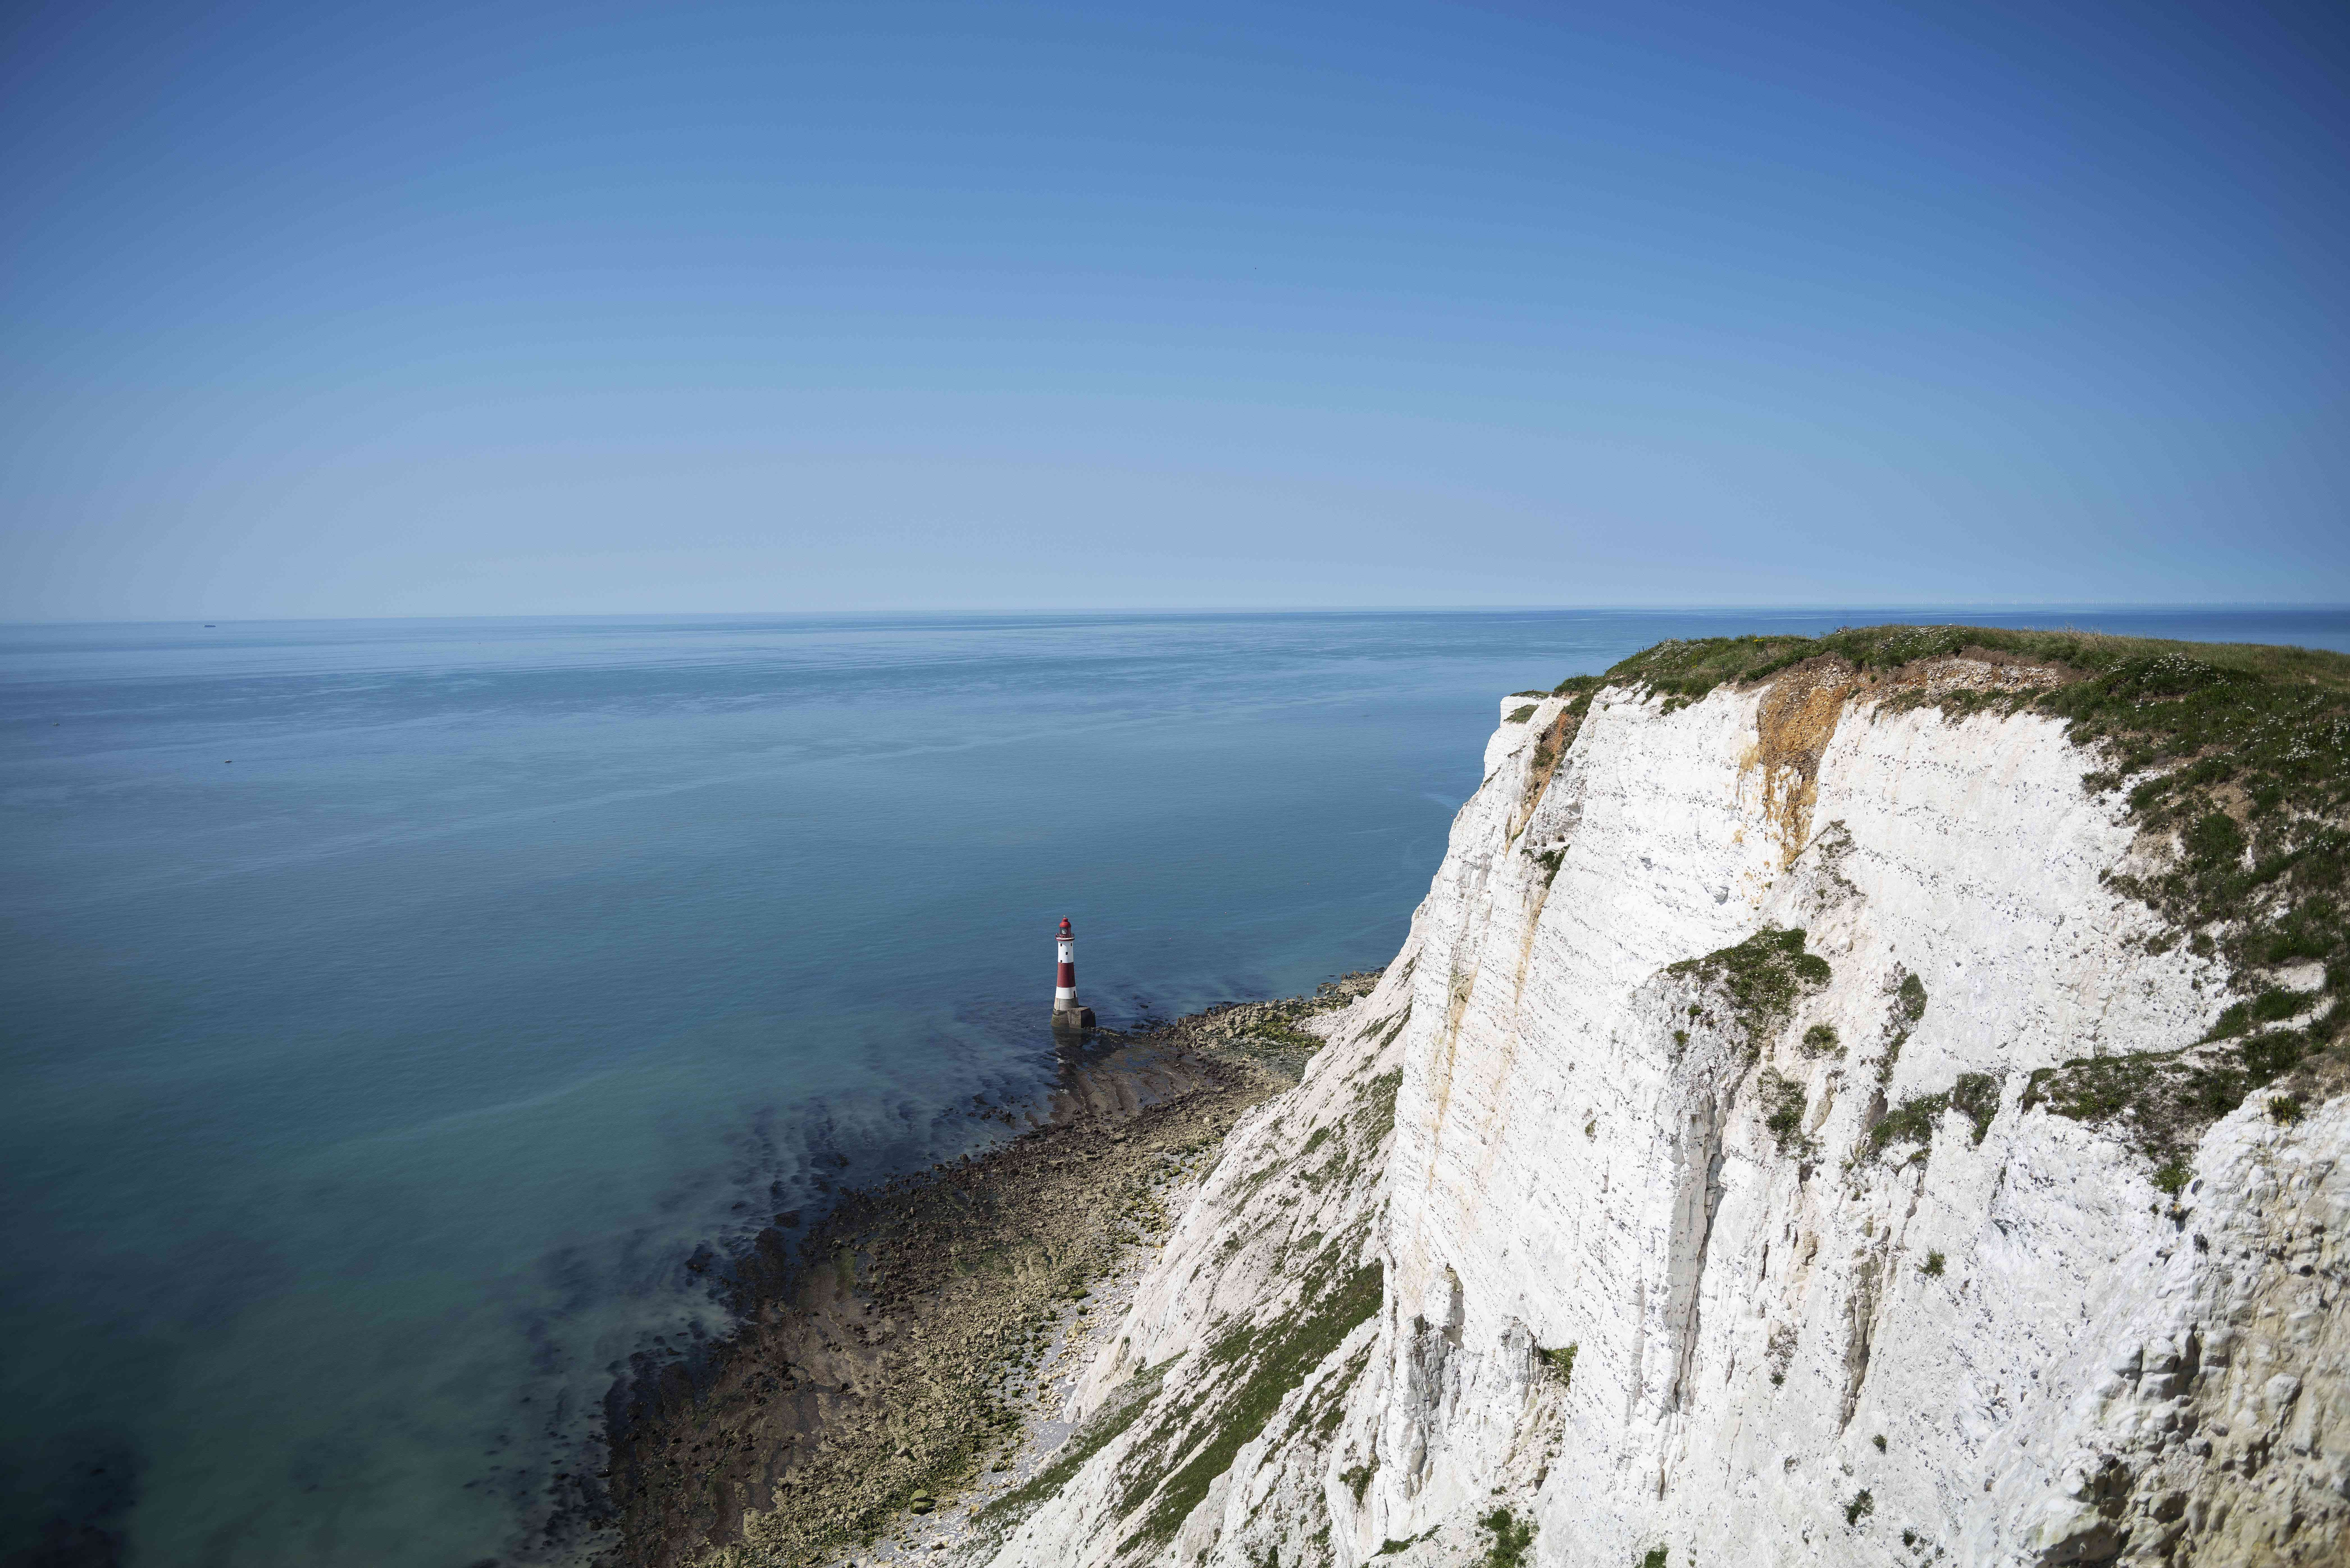 Beachy Head cliff in Eastbourne, England